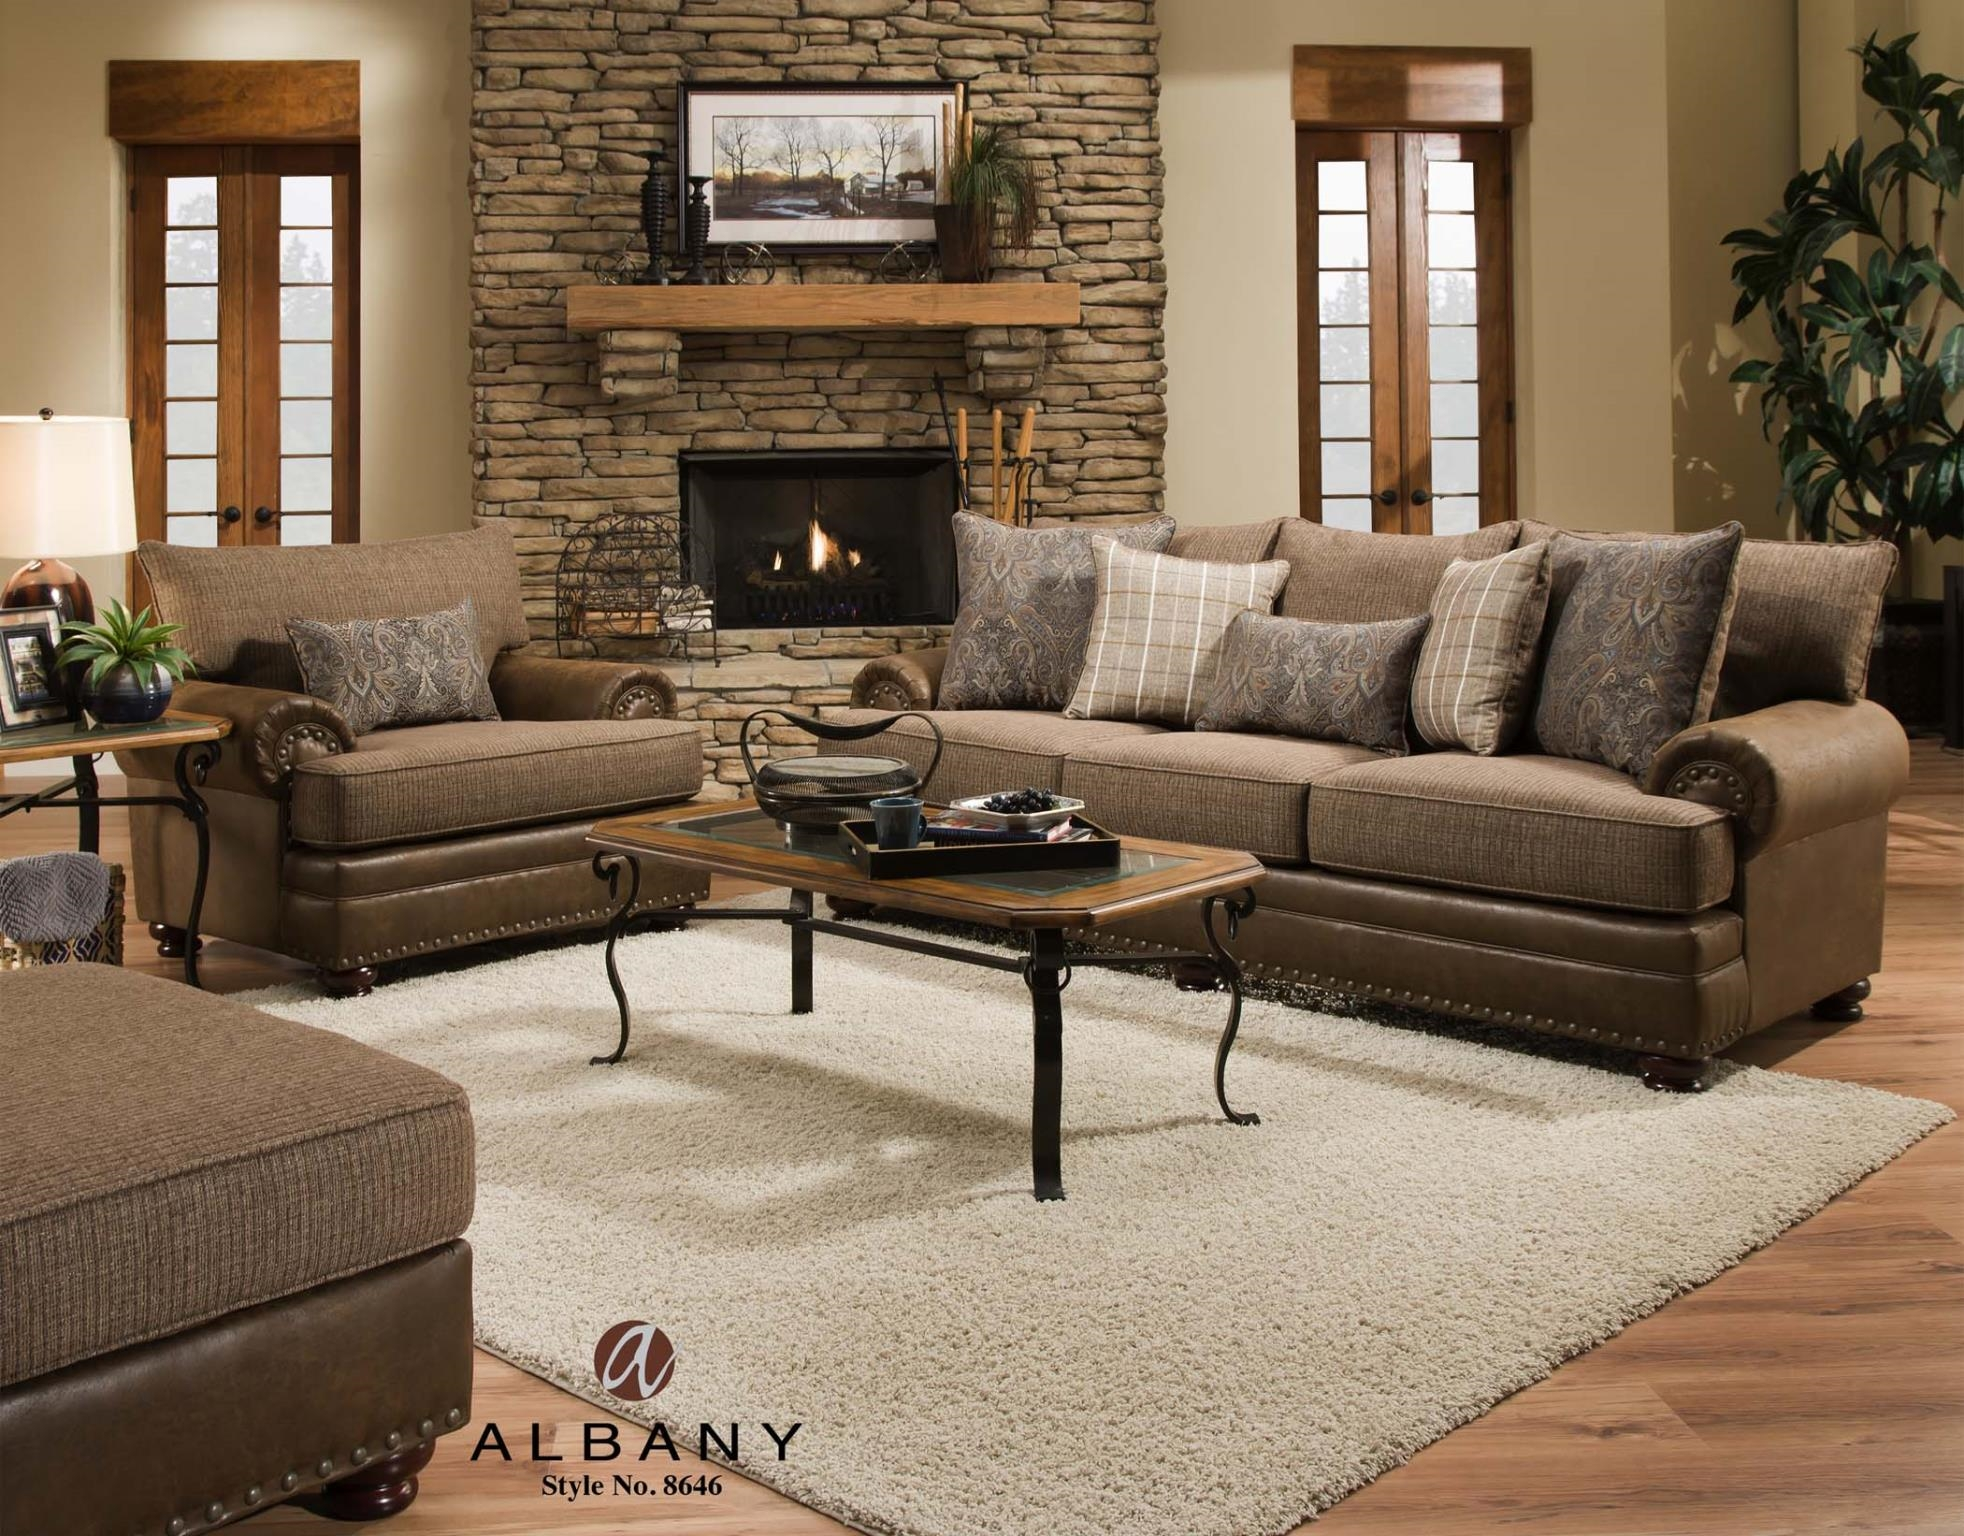 albany industries leather sofa lazyboy beds sectional ideas